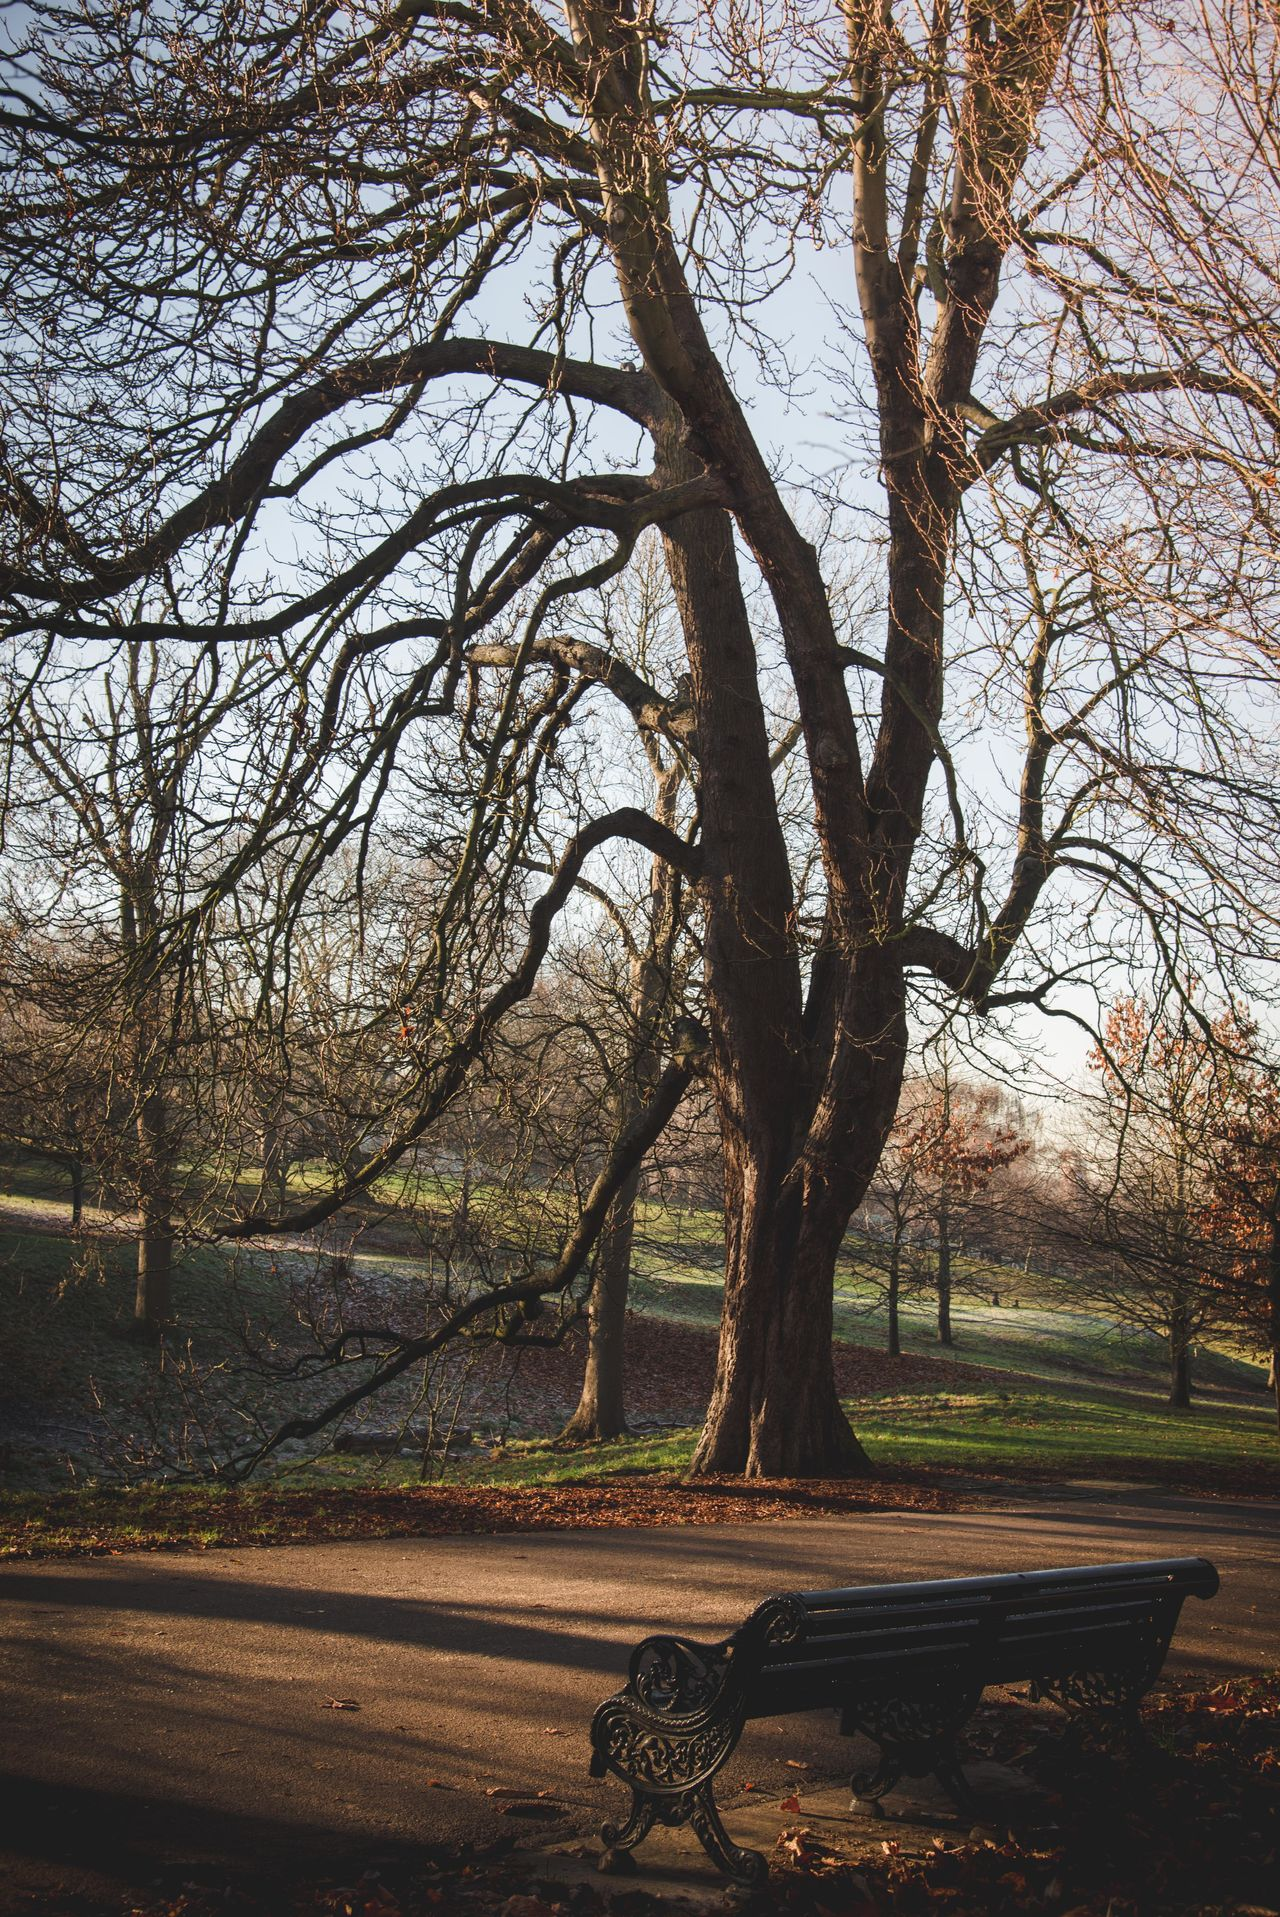 Greenwich Park Bare Tree Beauty In Nature Branch Day Greenwich Park Landscape London Parks Nature No People Outdoors Scenics Sky Tranquil Scene Tranquility Tree Tree Trunk